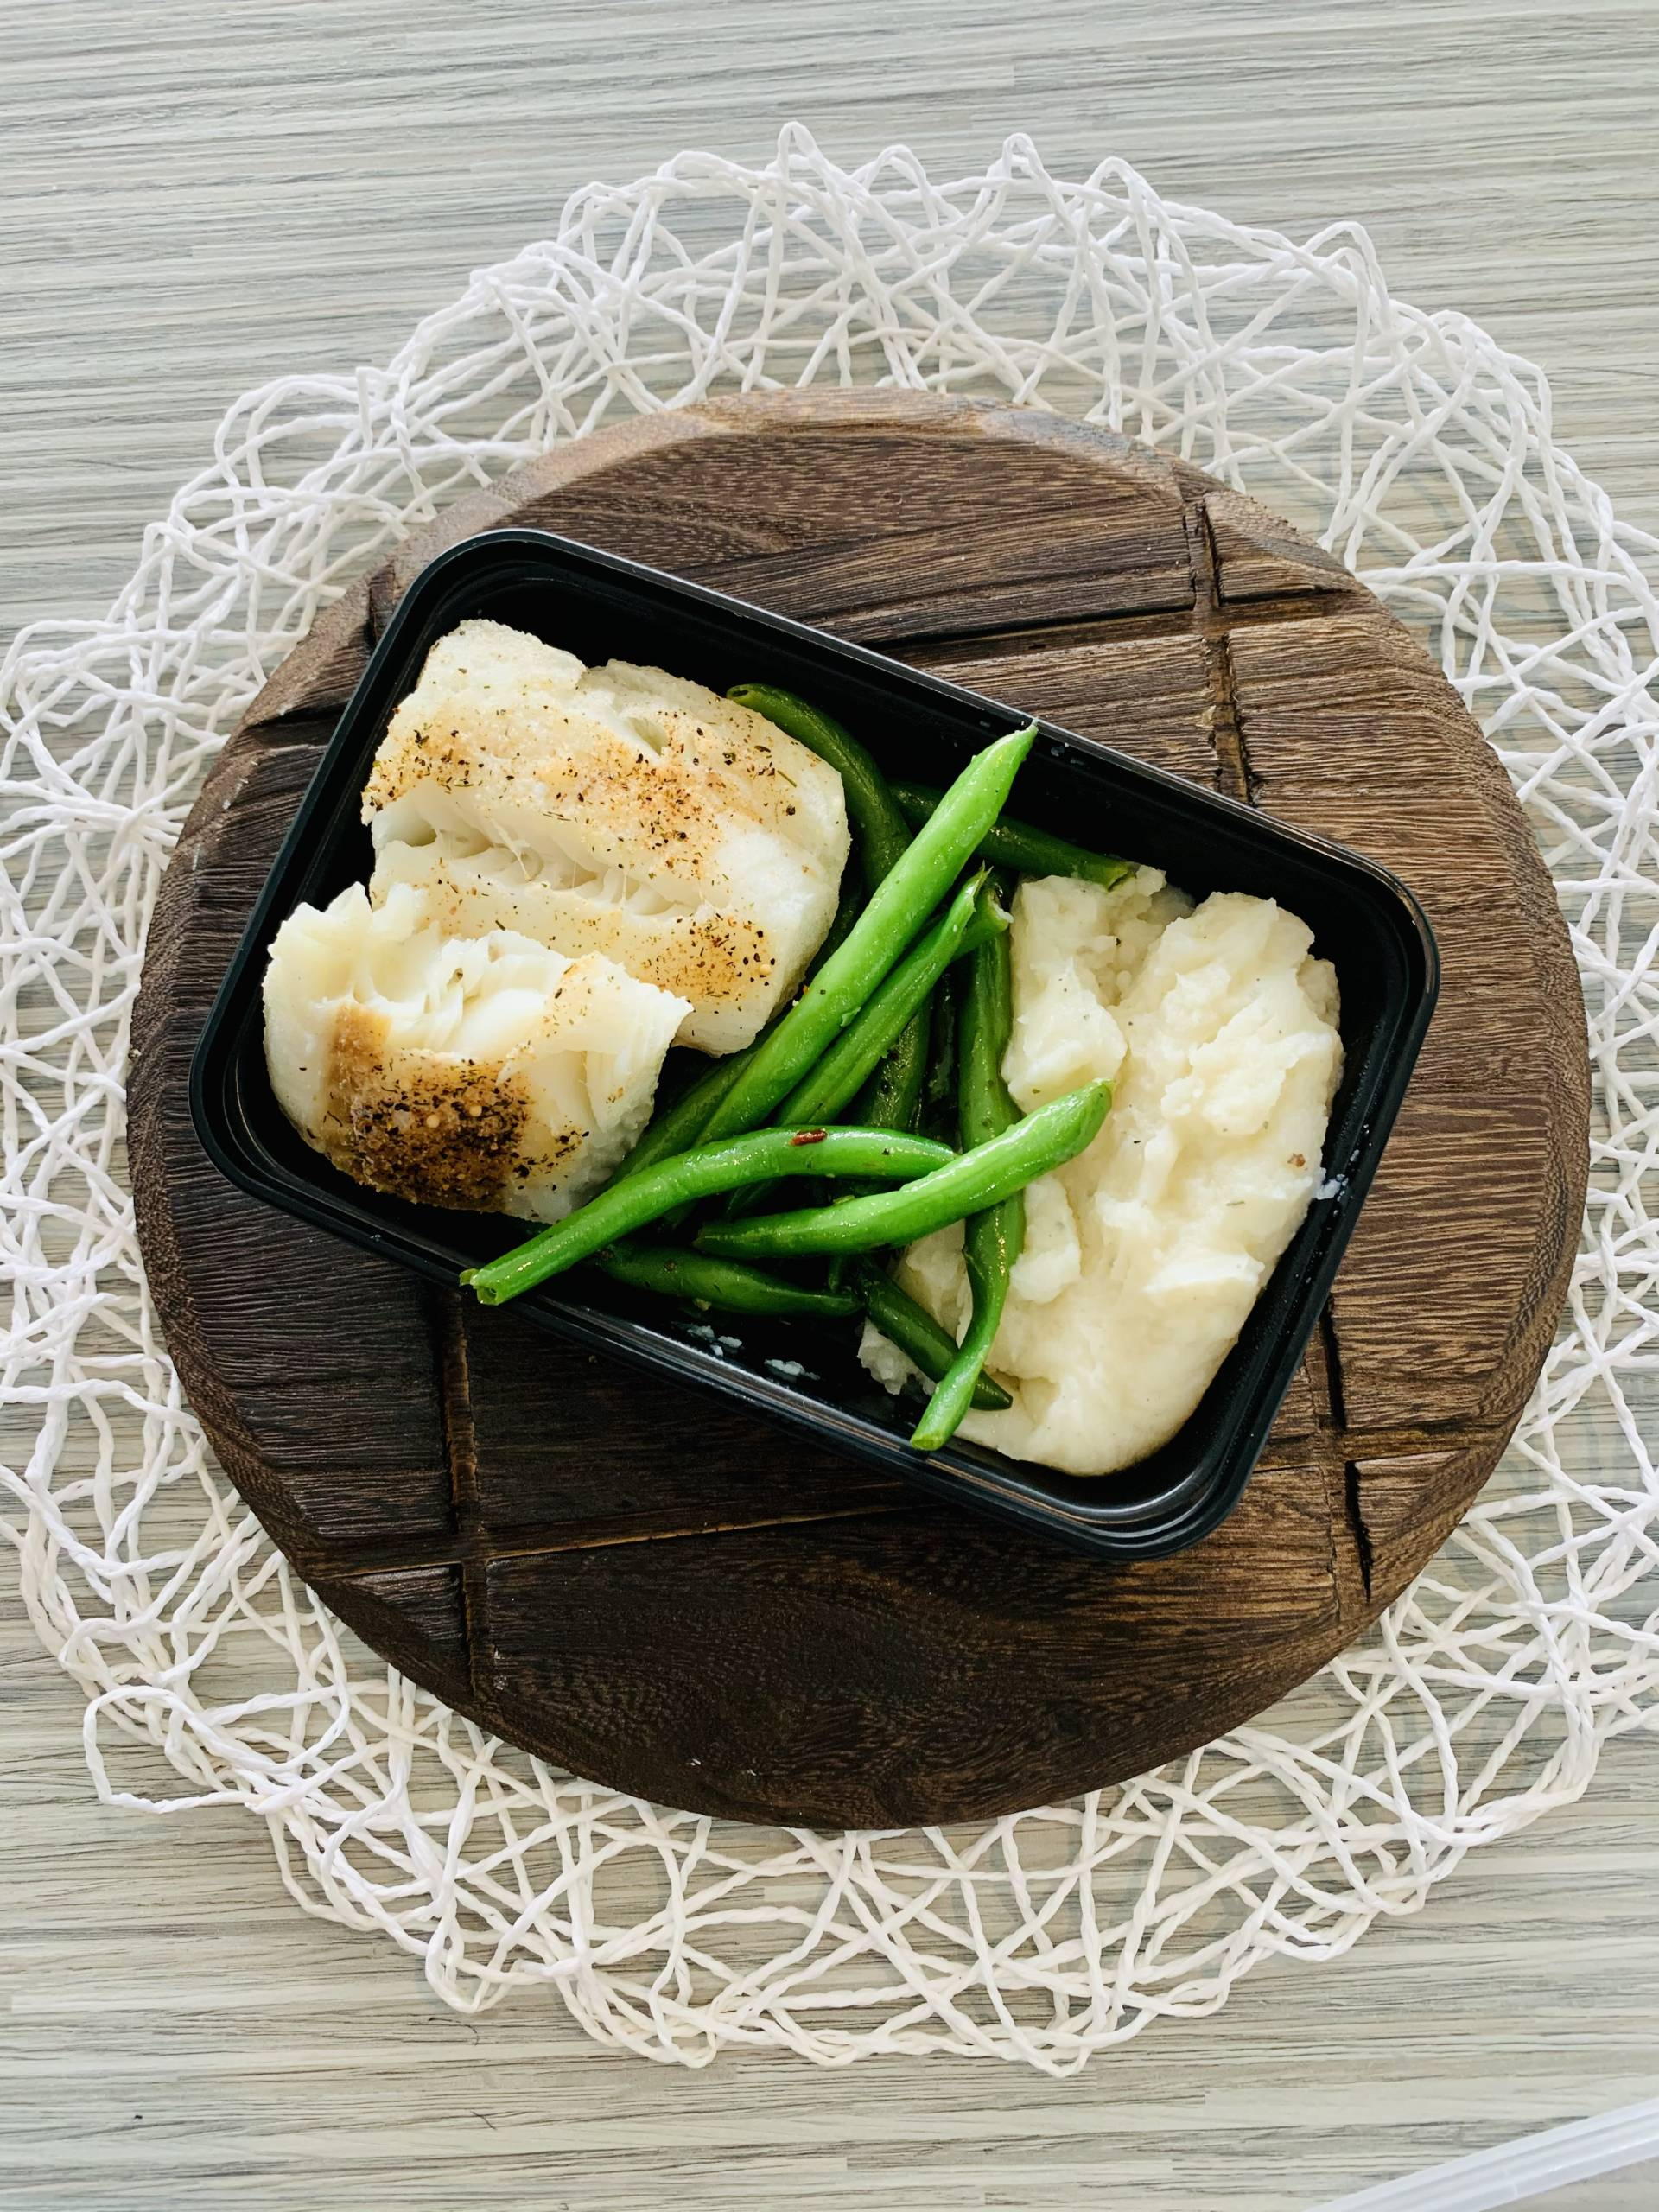 Cod, Mashed Potatoes and Green Beans